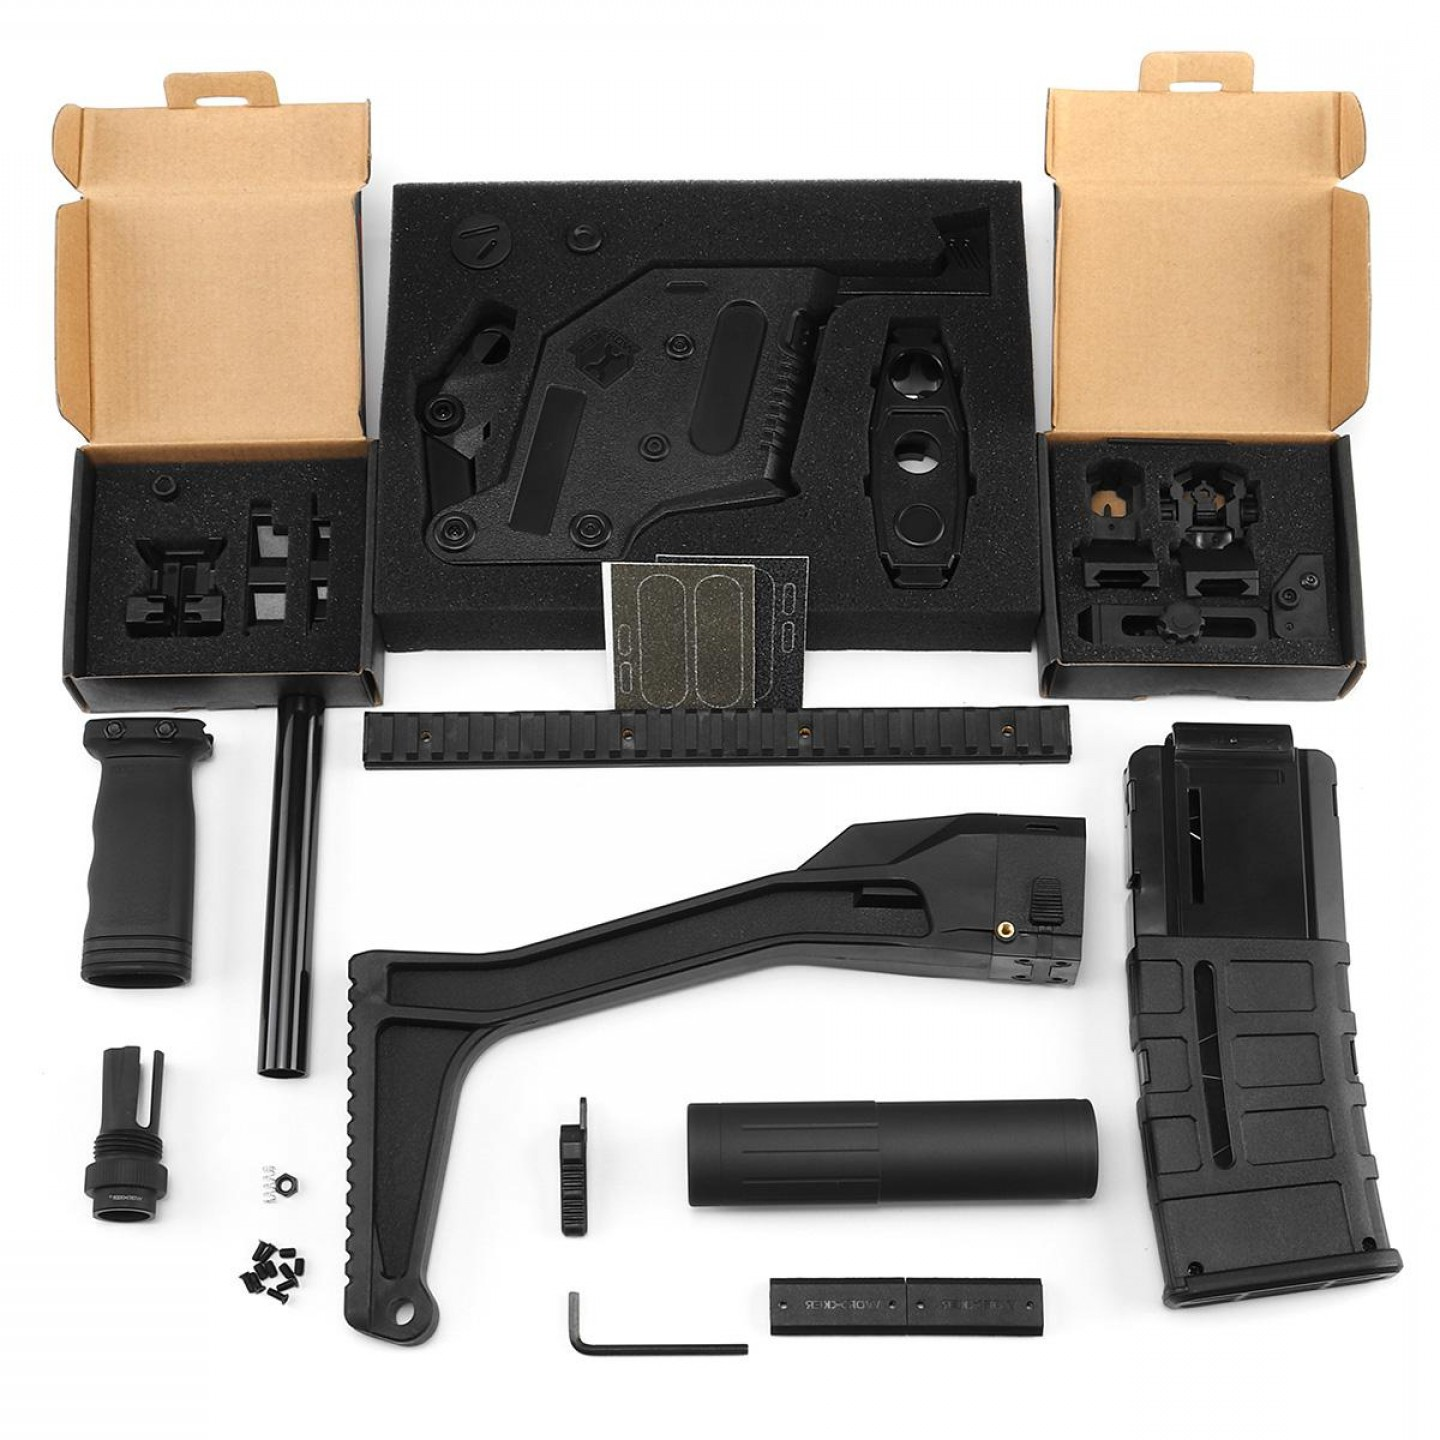 Vector Kriss Scope: Worker Mod Kriss Vector Imitation Kit Combo Items W Tactical Quick Deploy Flip Up Scope For Nerf Stryfe Modify Toy